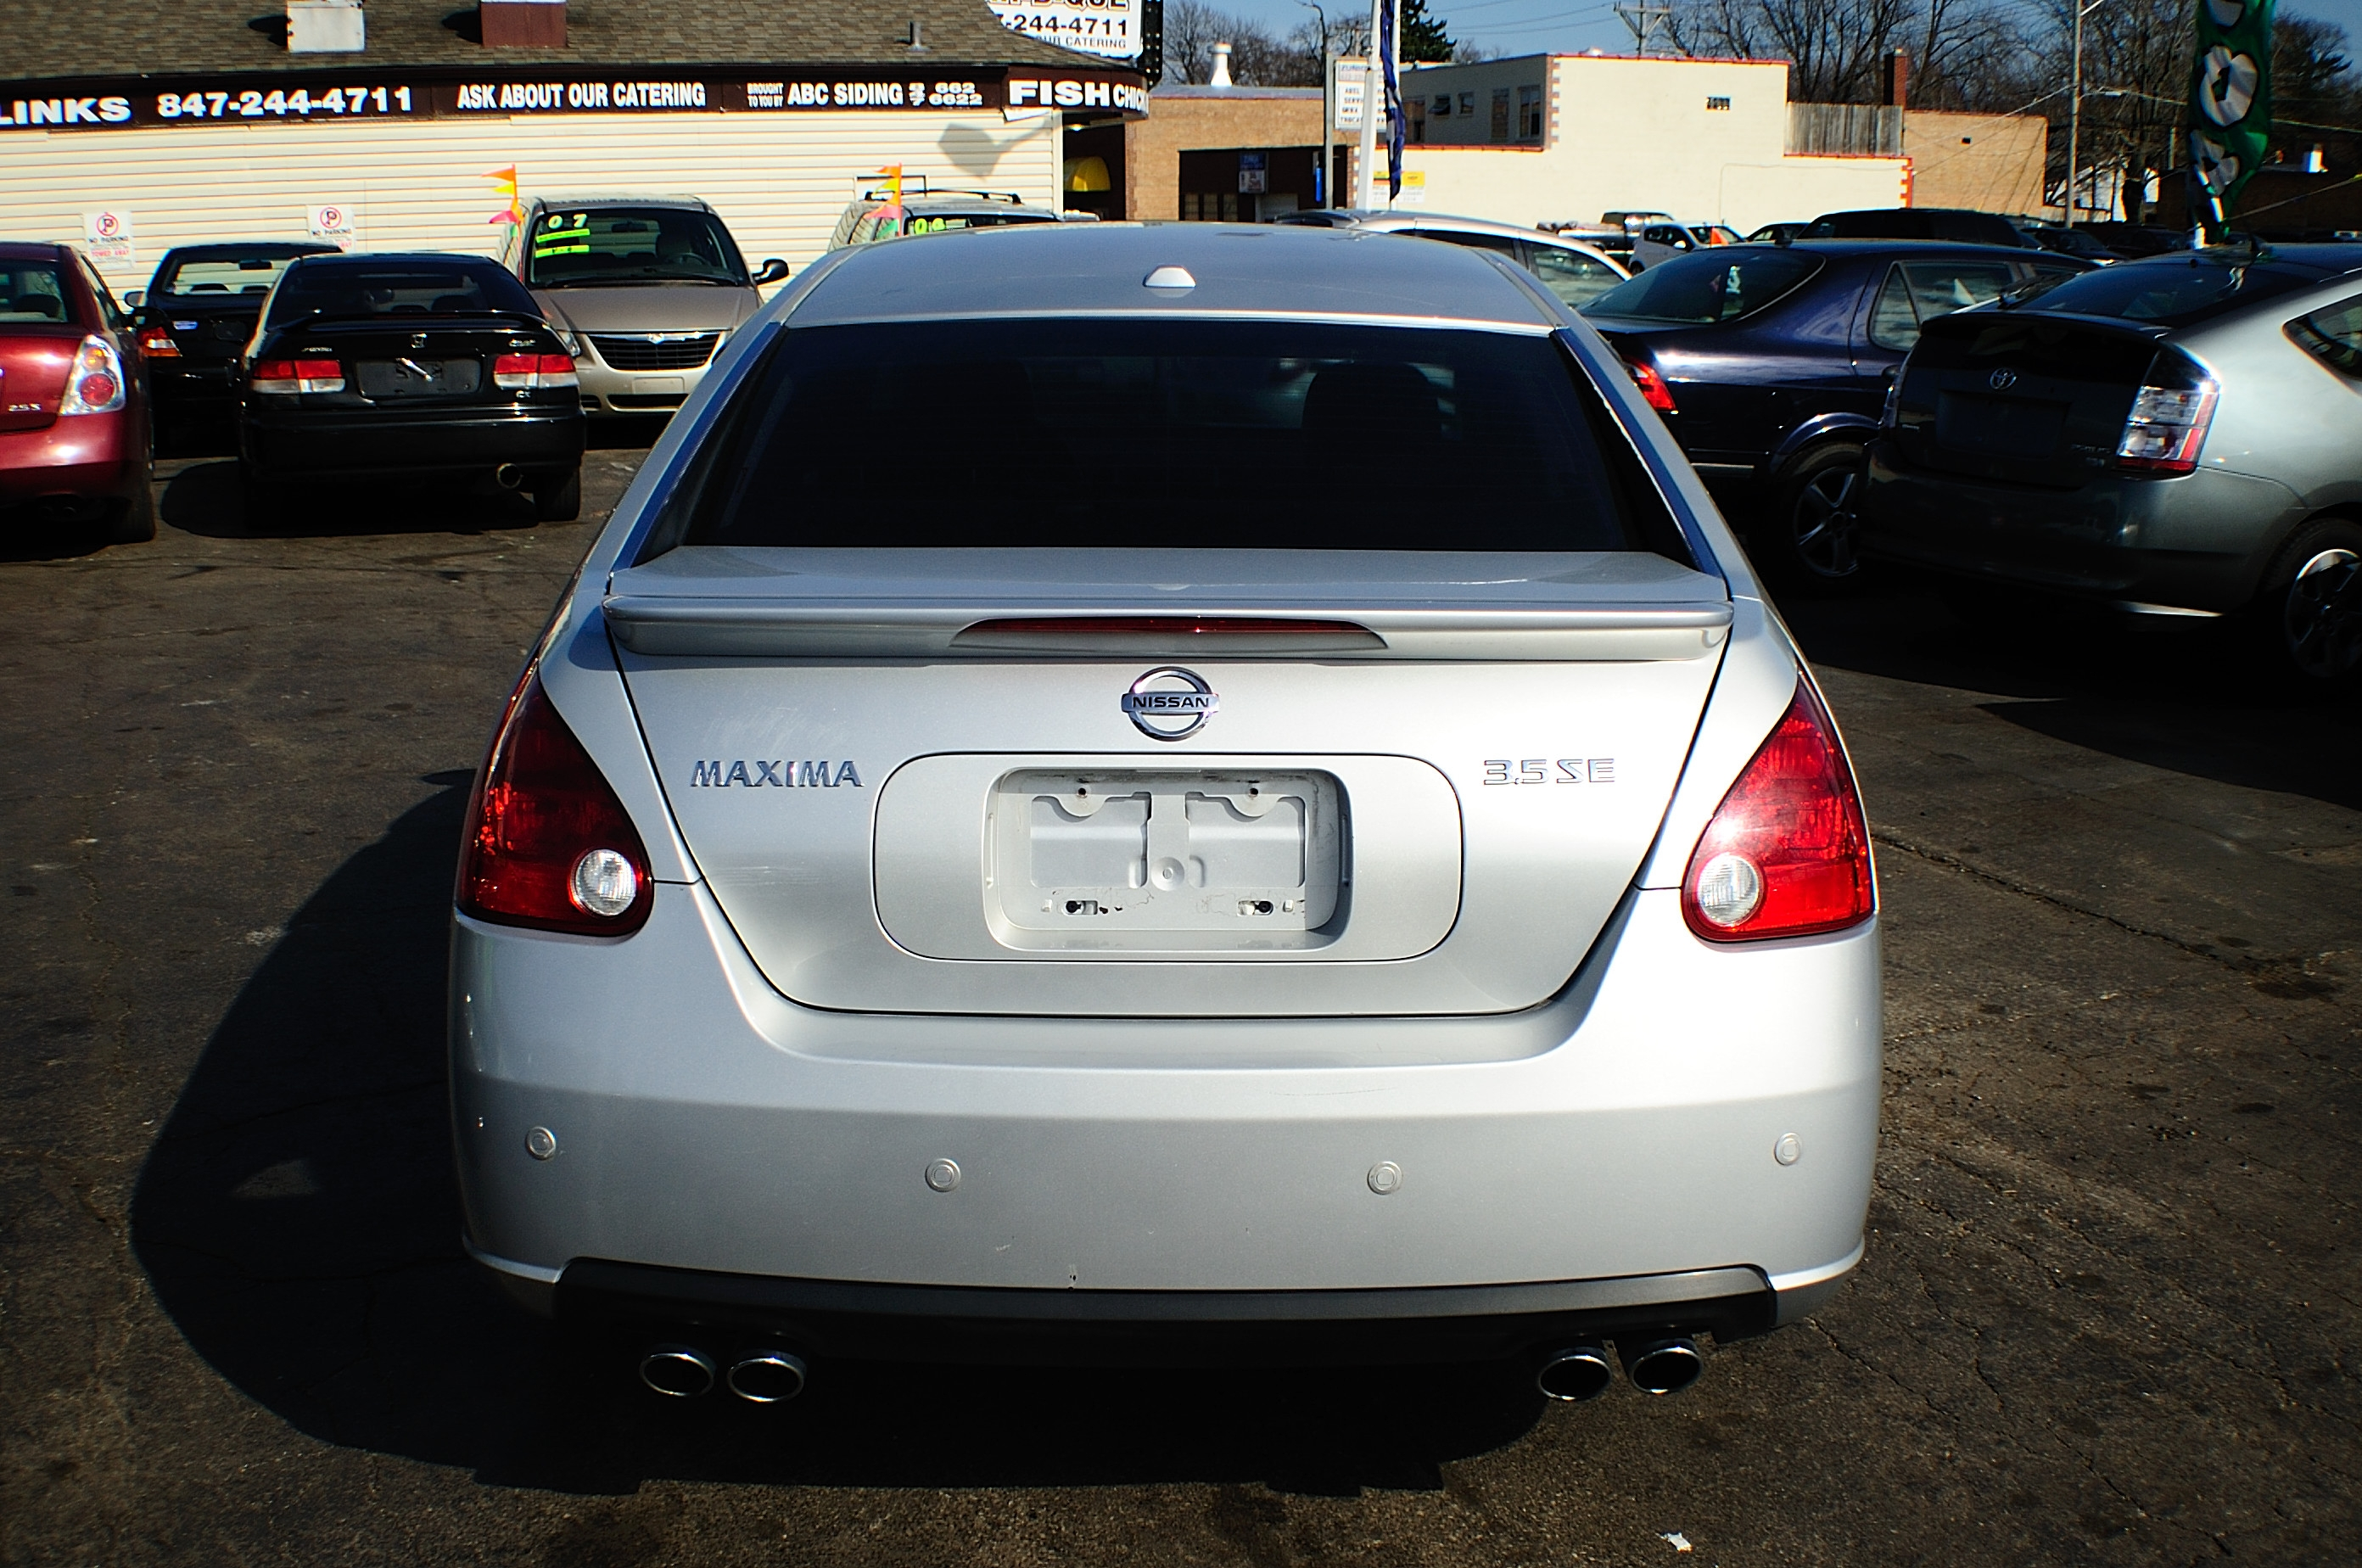 Autos For Sale >> 2007 Nissan Maxima SE 4Dr Silver Sedan used car